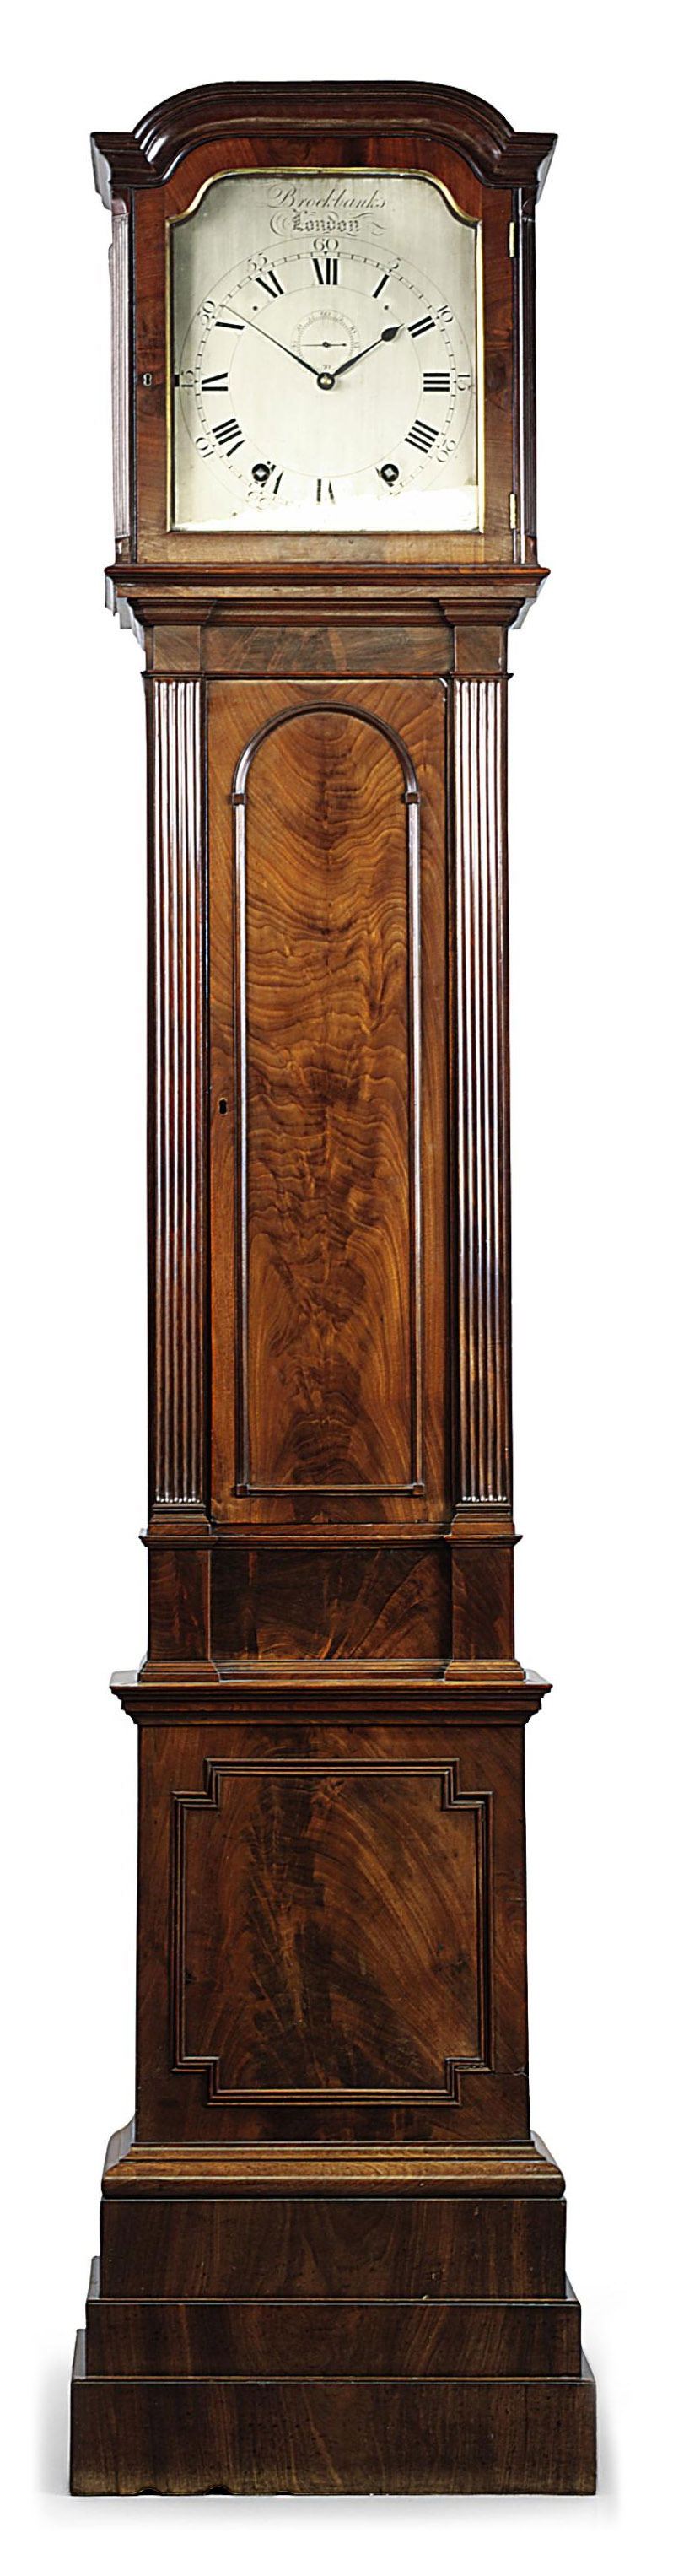 A GEORGE III MAHOGANY STRIKING YEAR-GOING LONGCASE CLOCK